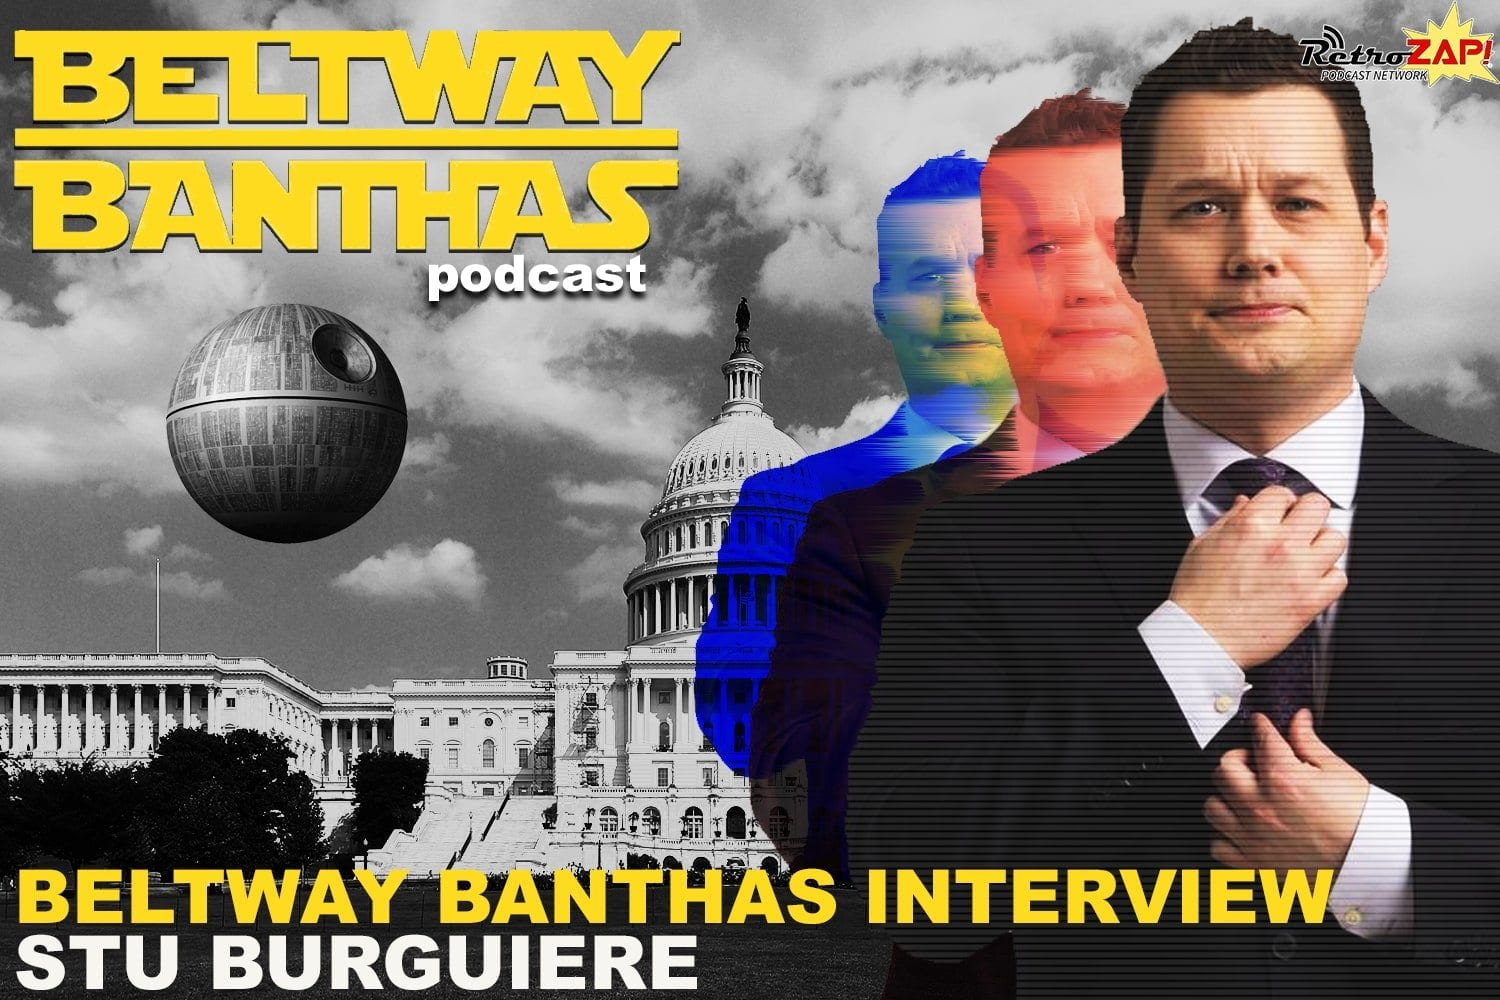 Beltway Banthas Interview: Stu Burguiere of The Glenn Beck Program